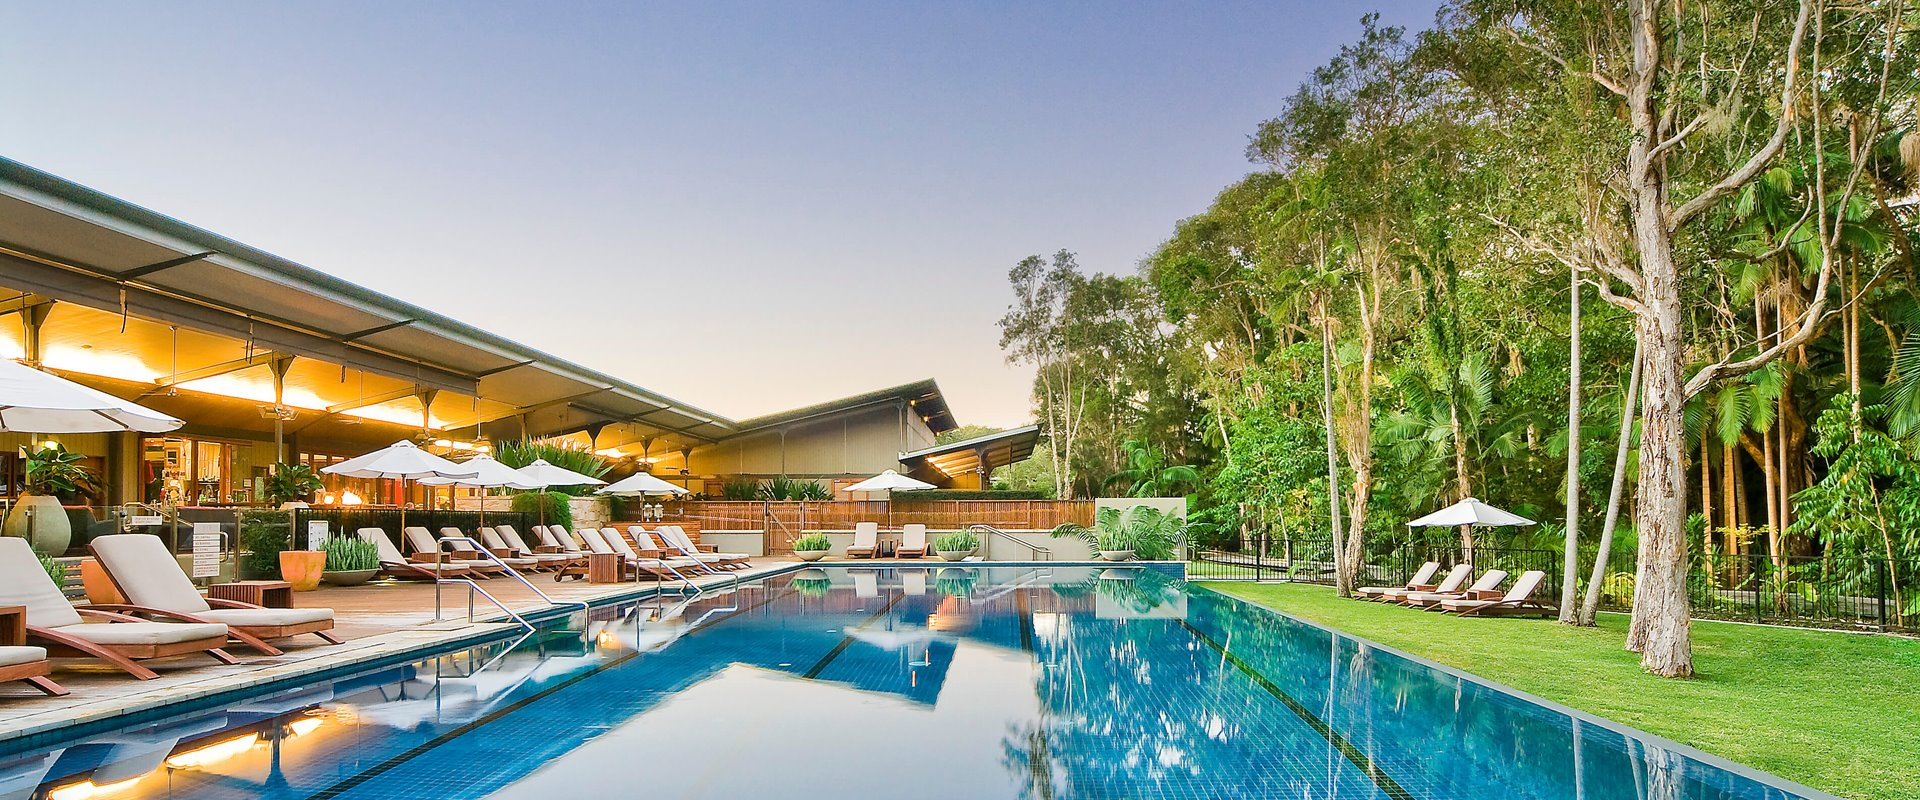 The Byron at Byron | Conference Venues Regional NSW | Conference Venues New South Wales